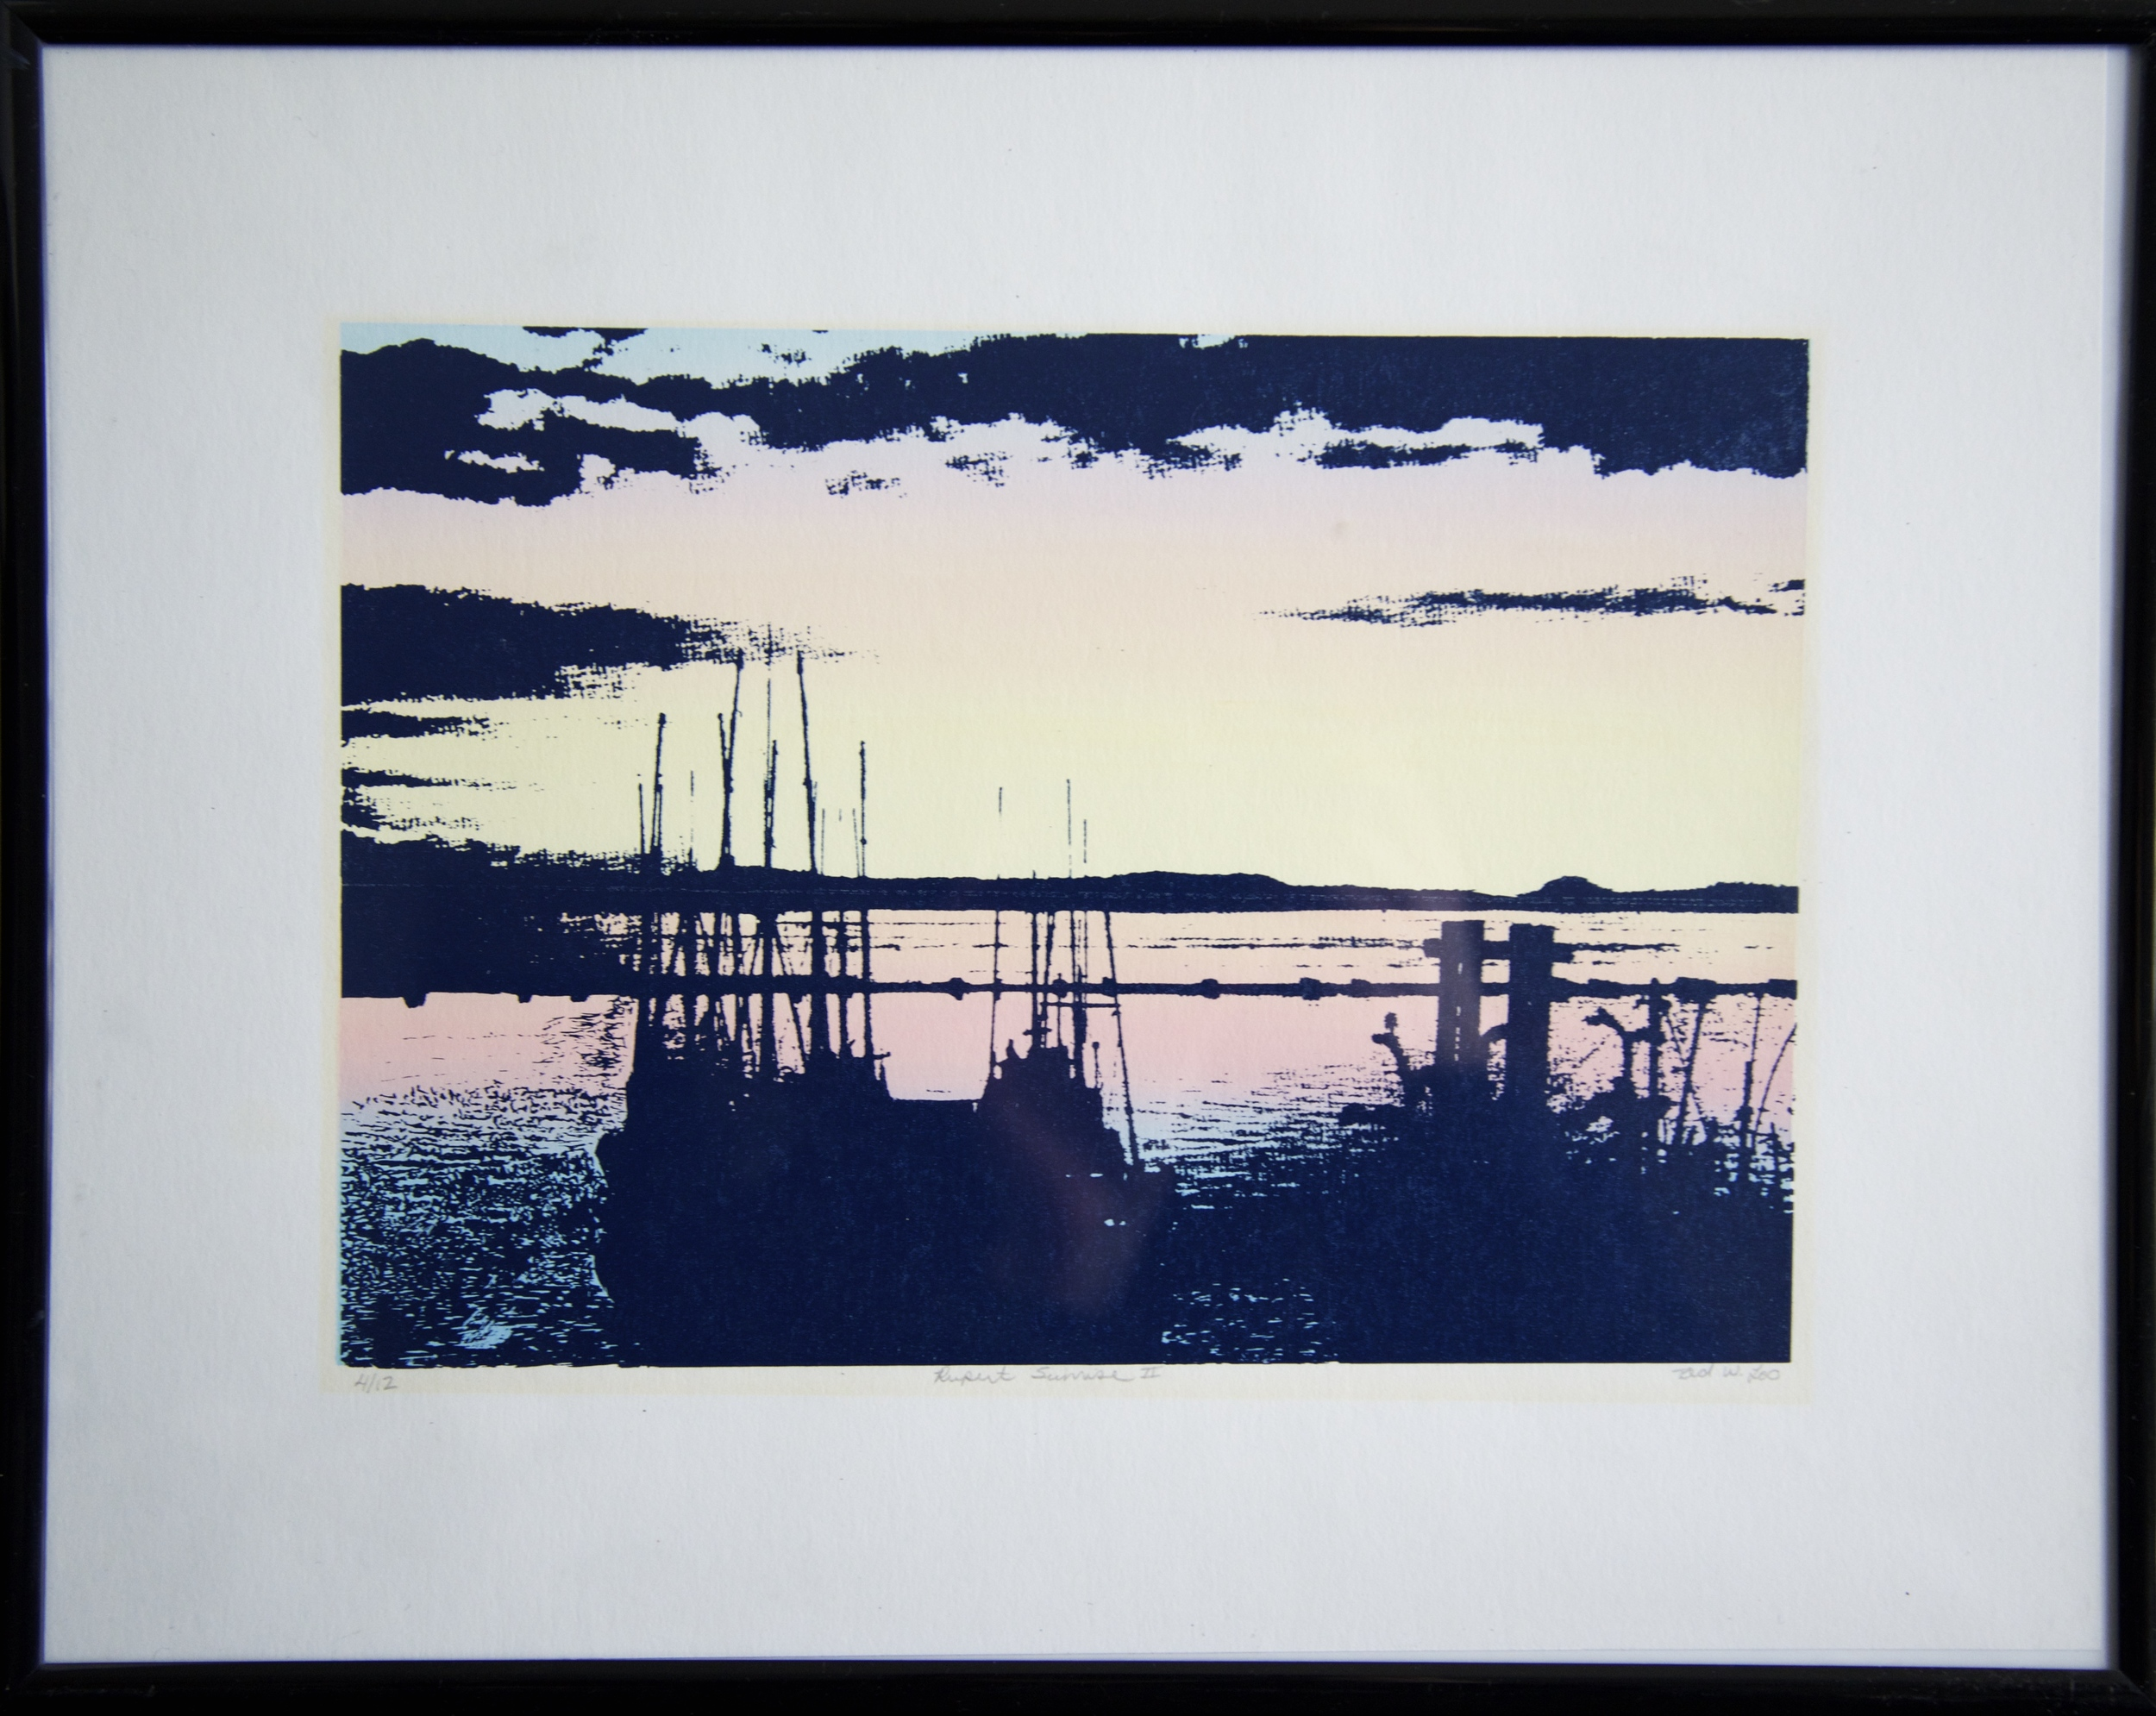 You may think this signed & numbered print was purchased at an expensive home decor store as it is on trend with colours for 2016. However it was found at a local consignment shop for under $10. I kept it in the original black frame as it was in great condition.